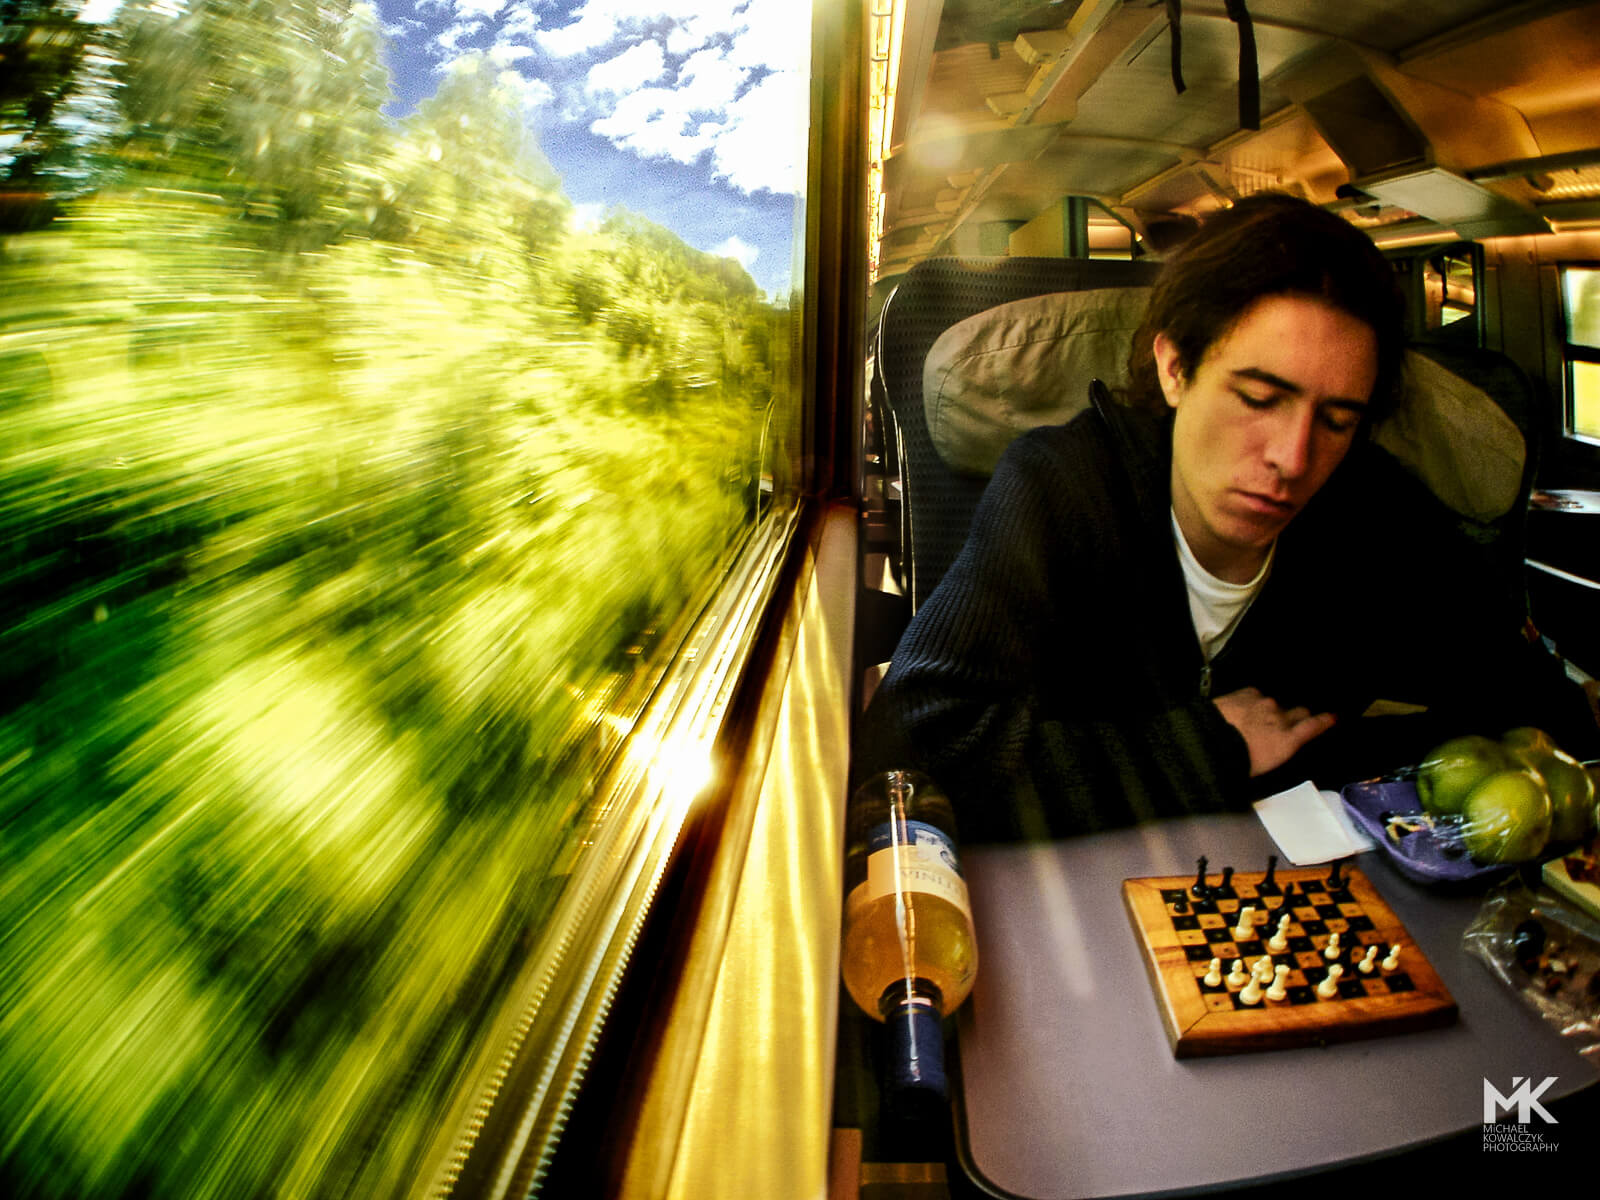 Playing chess and travel by ice train while landscapes pass by behind the window